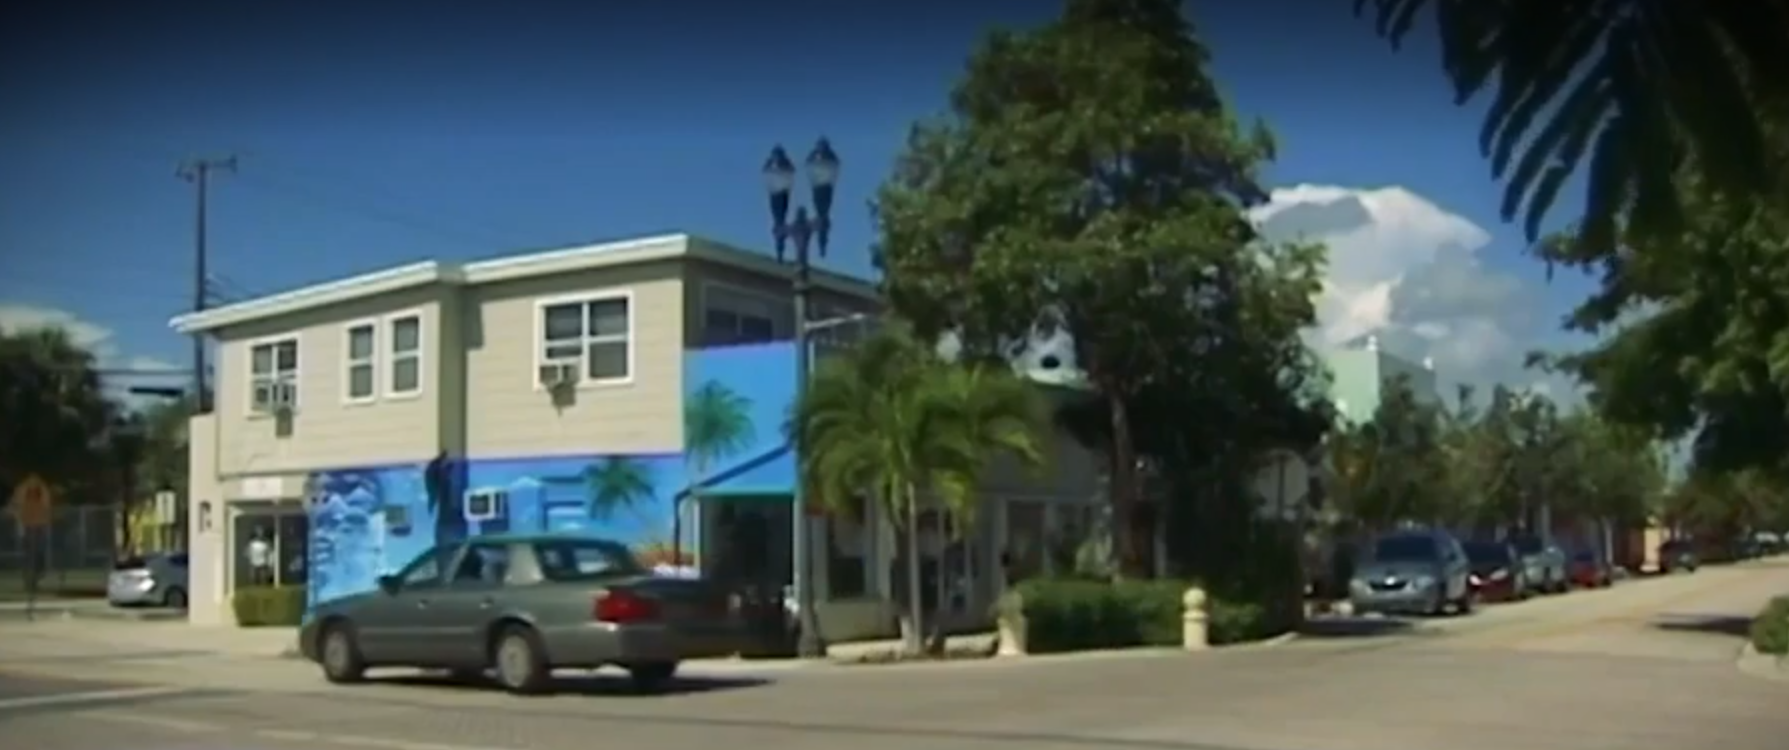 Poorest areas in West Palm Beach to receive a makeover